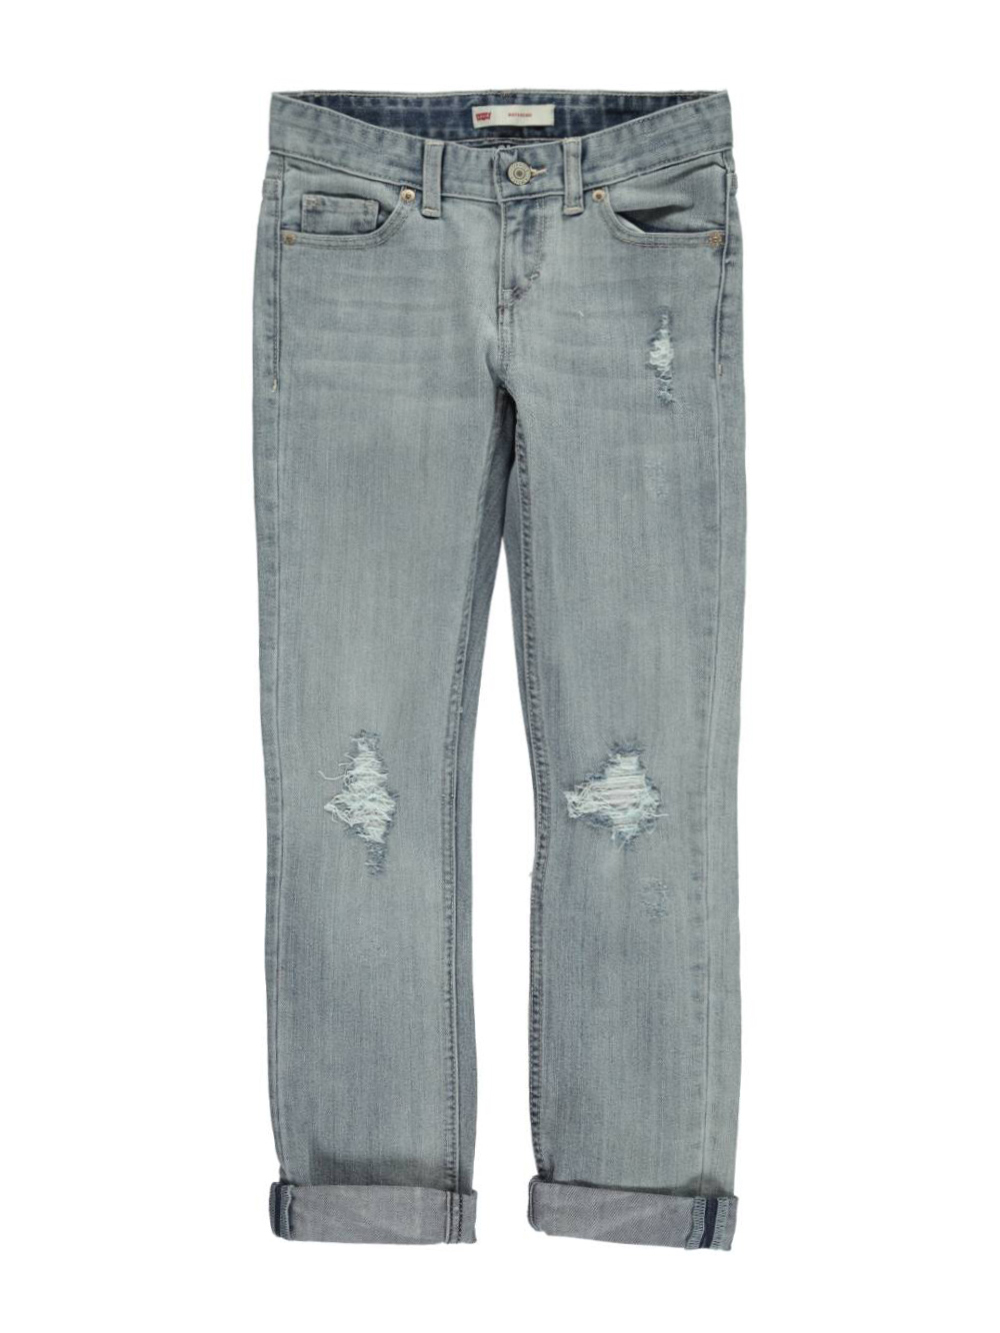 Image of Levis Big Girls Torn  Swooped Boyfriend Jeans Sizes 7  16